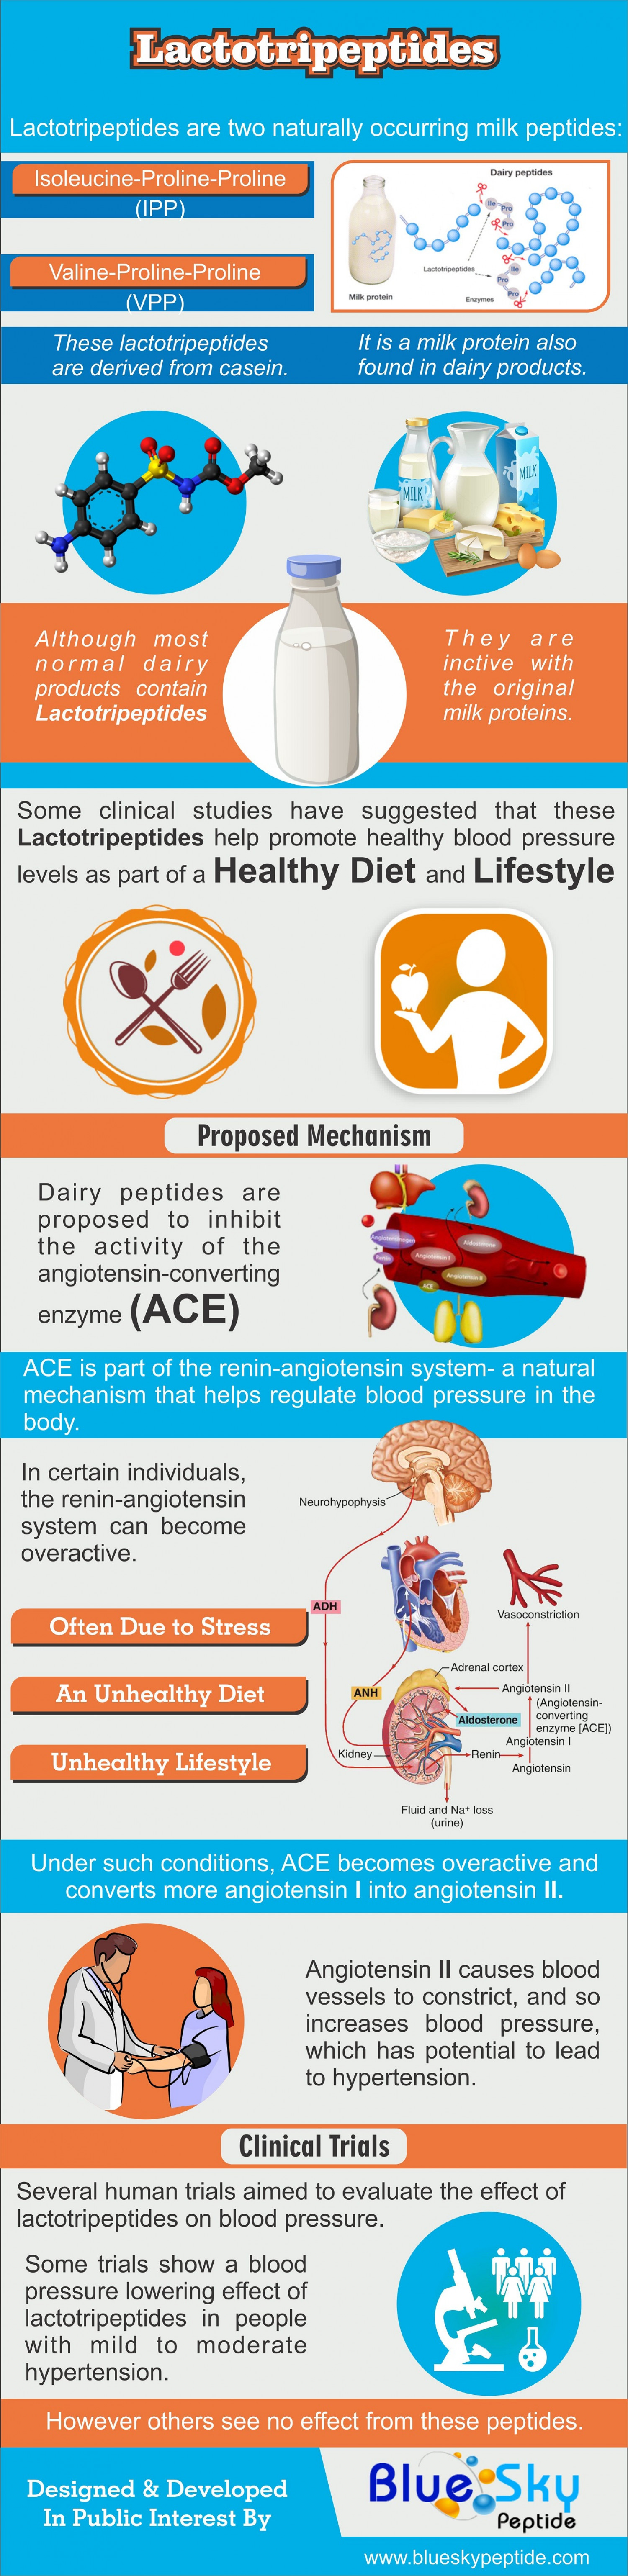 Lactotripeptides Infographic